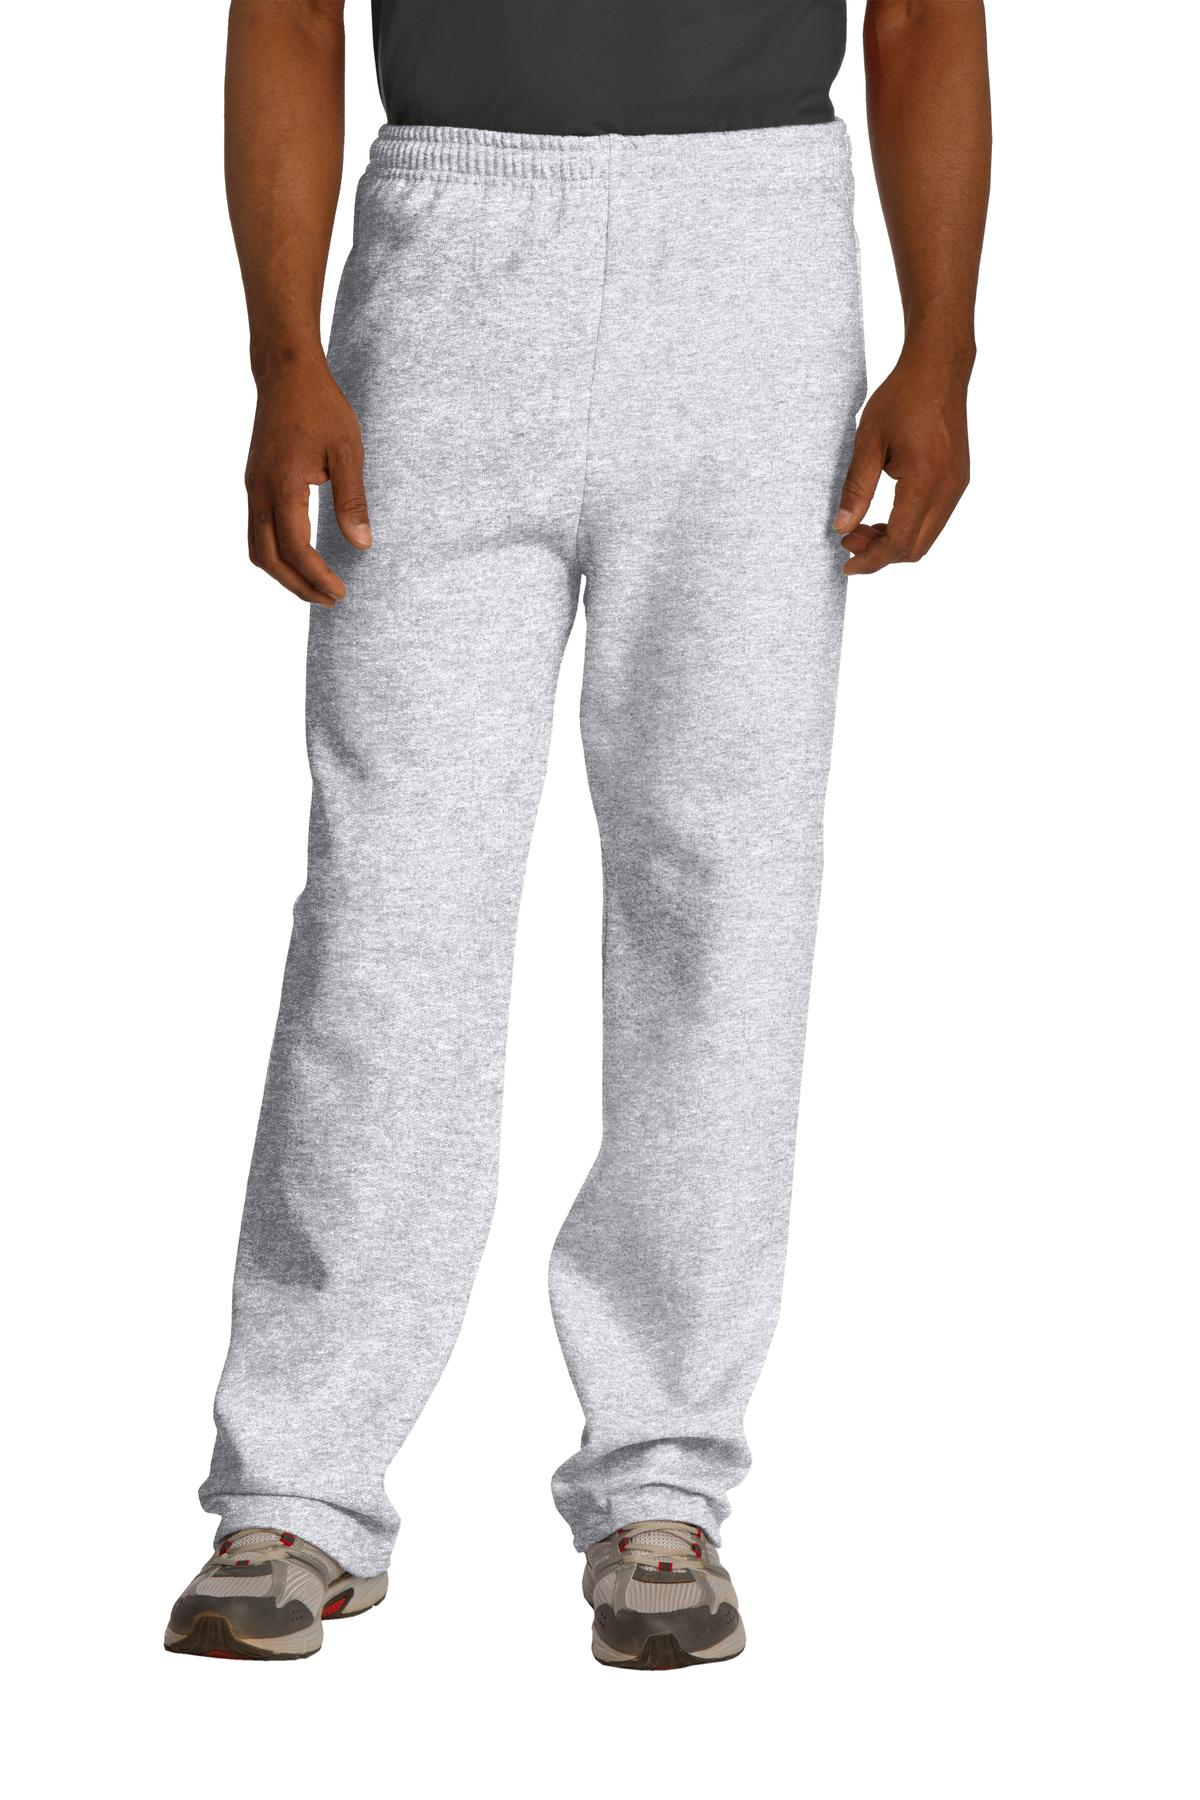 JERZEES ®  NuBlend ®  Open Bottom Pant with Pockets. 974MP - Ash